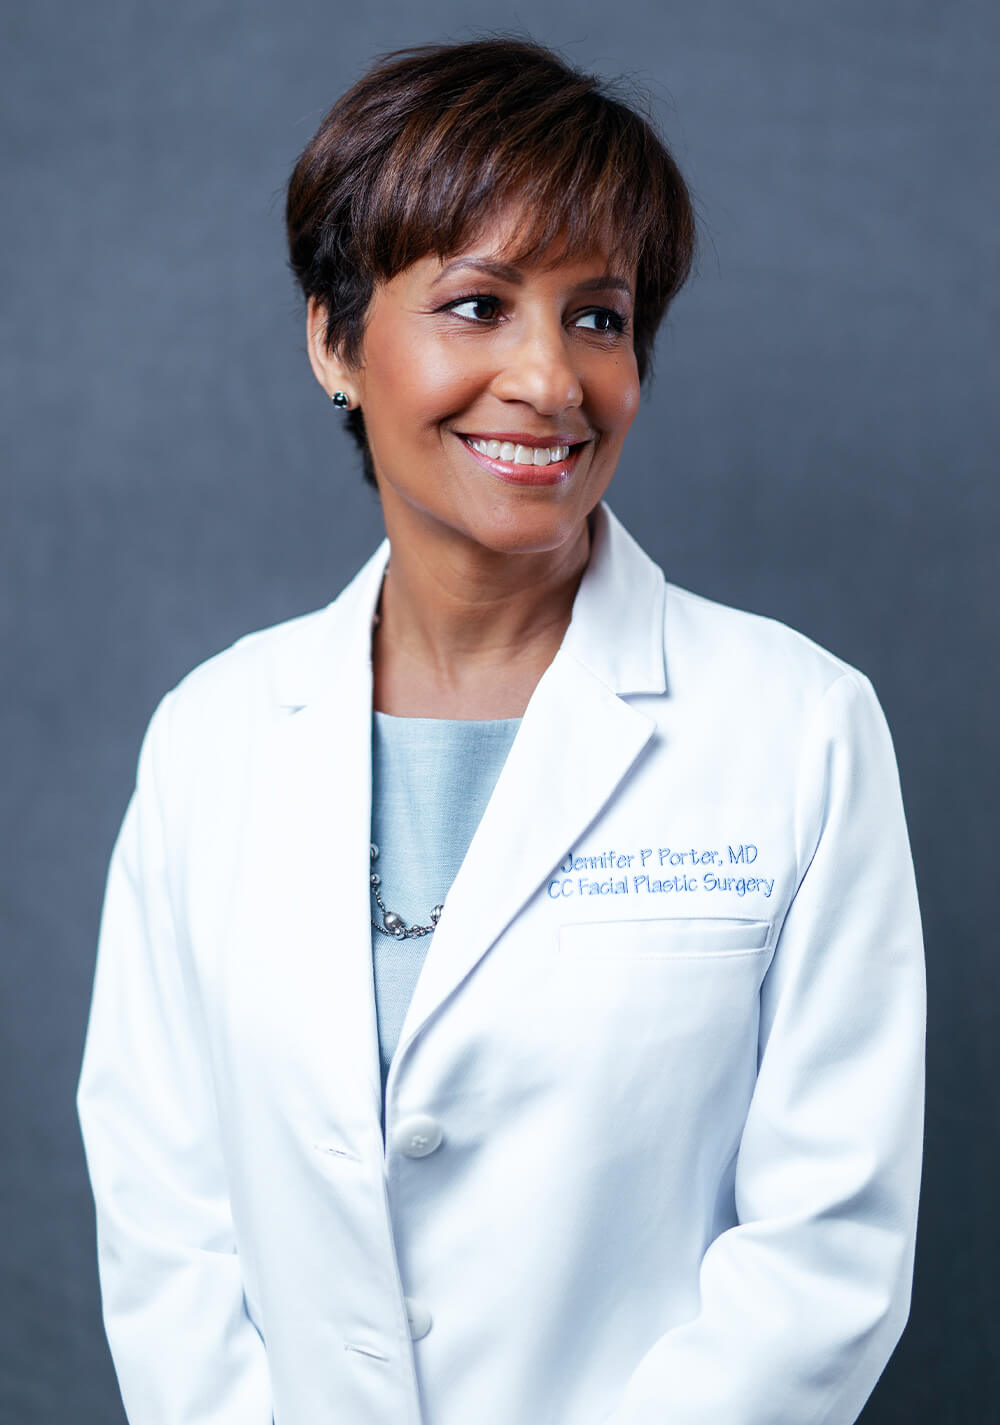 Jennifer Parker Porter, MD, FACS | Facial Plastic Surgery In Maryland & Washington DC